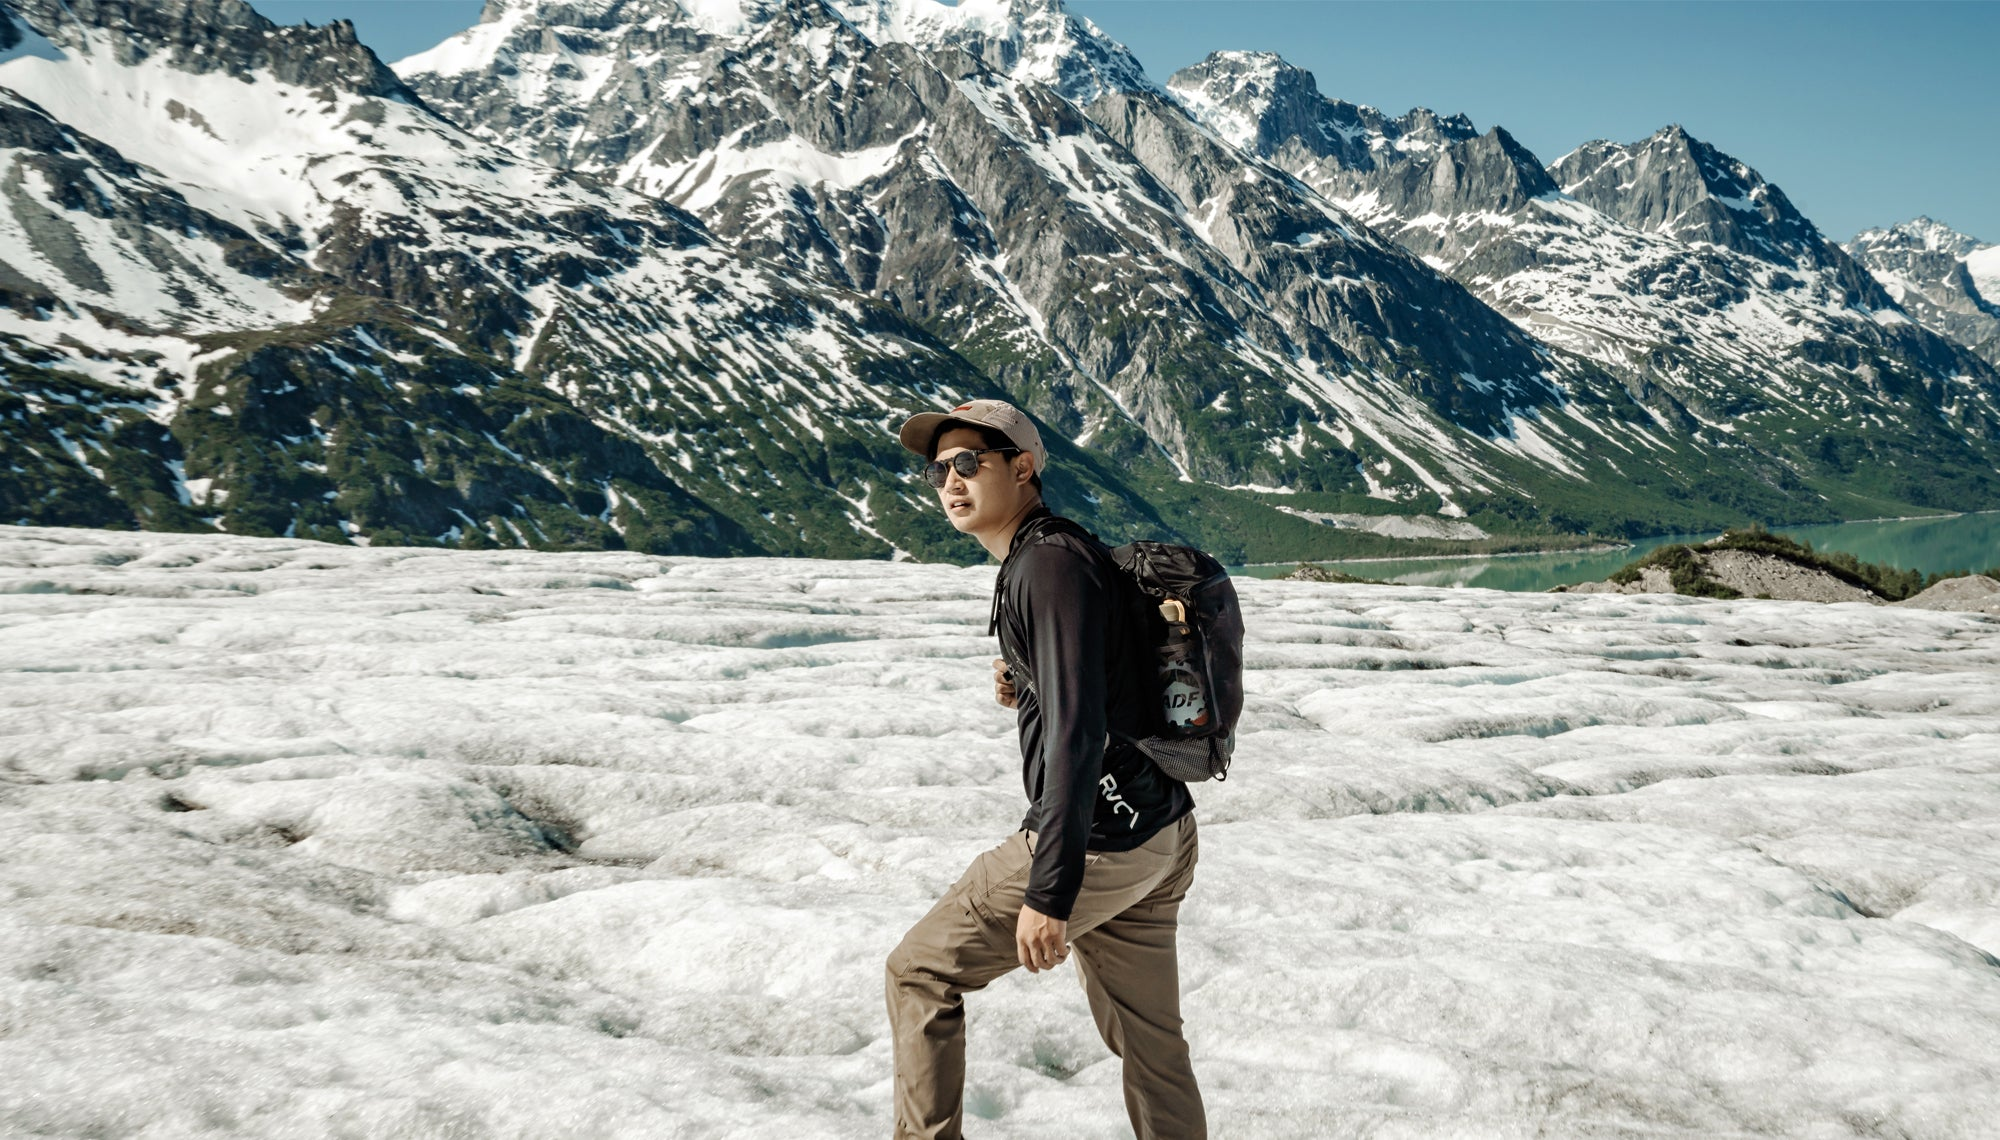 Man standing on glacier in front of snowy mountains